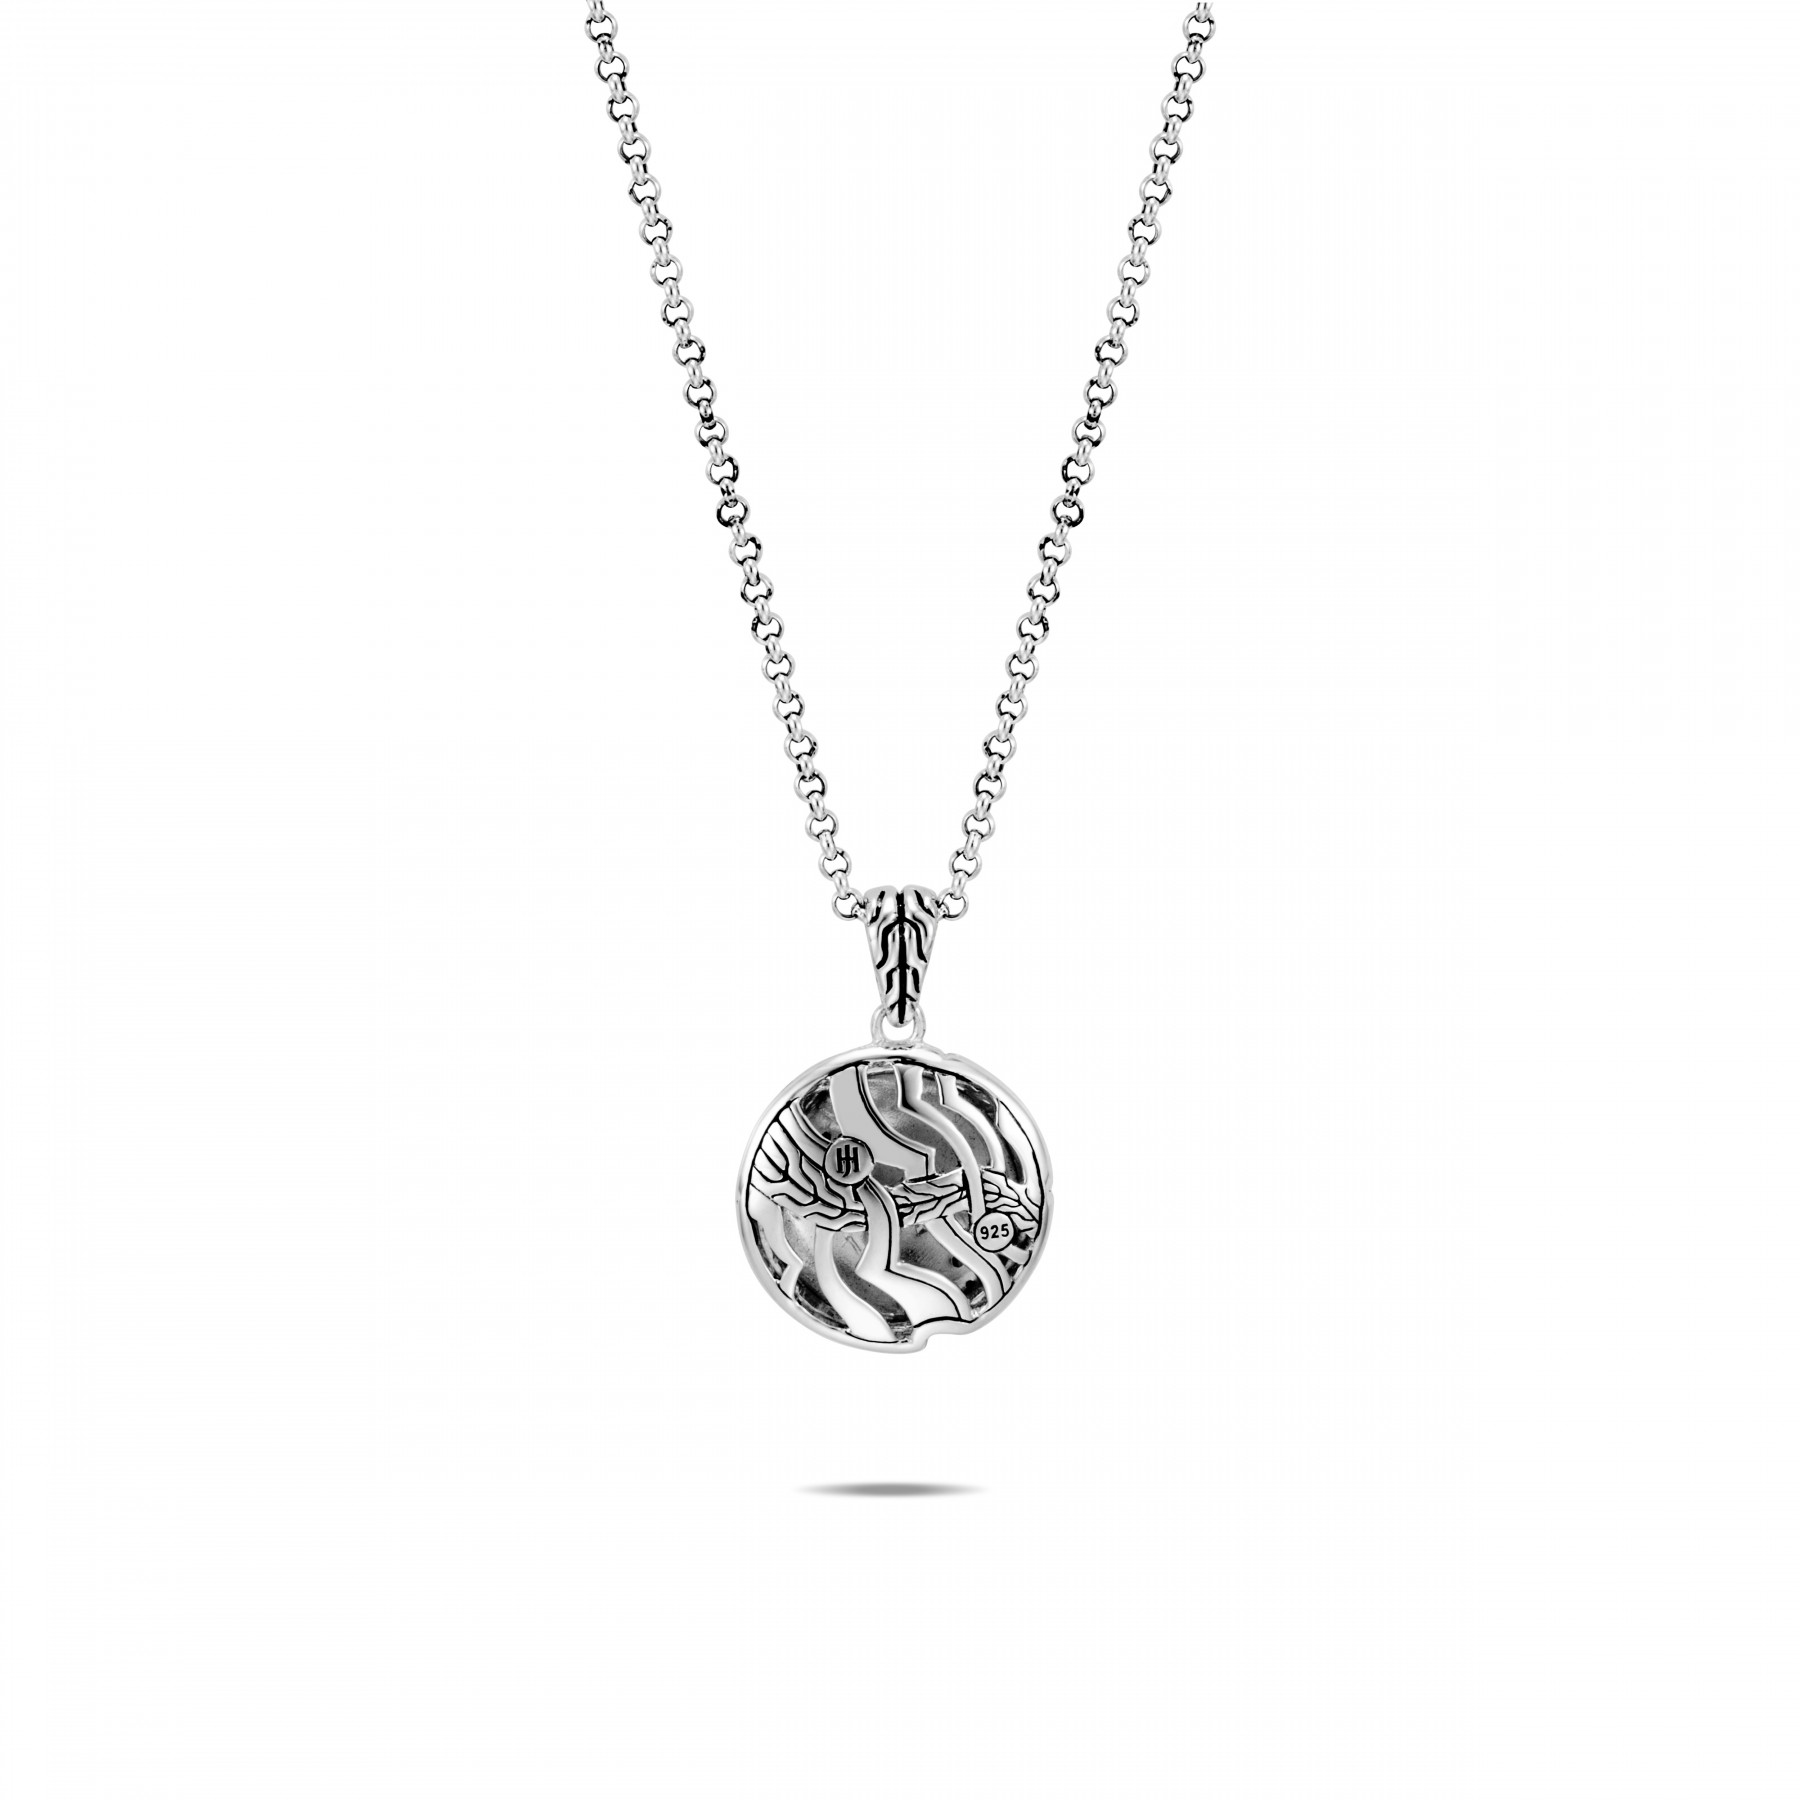 John Hardy White and Grey Diamond Round Necklace back view